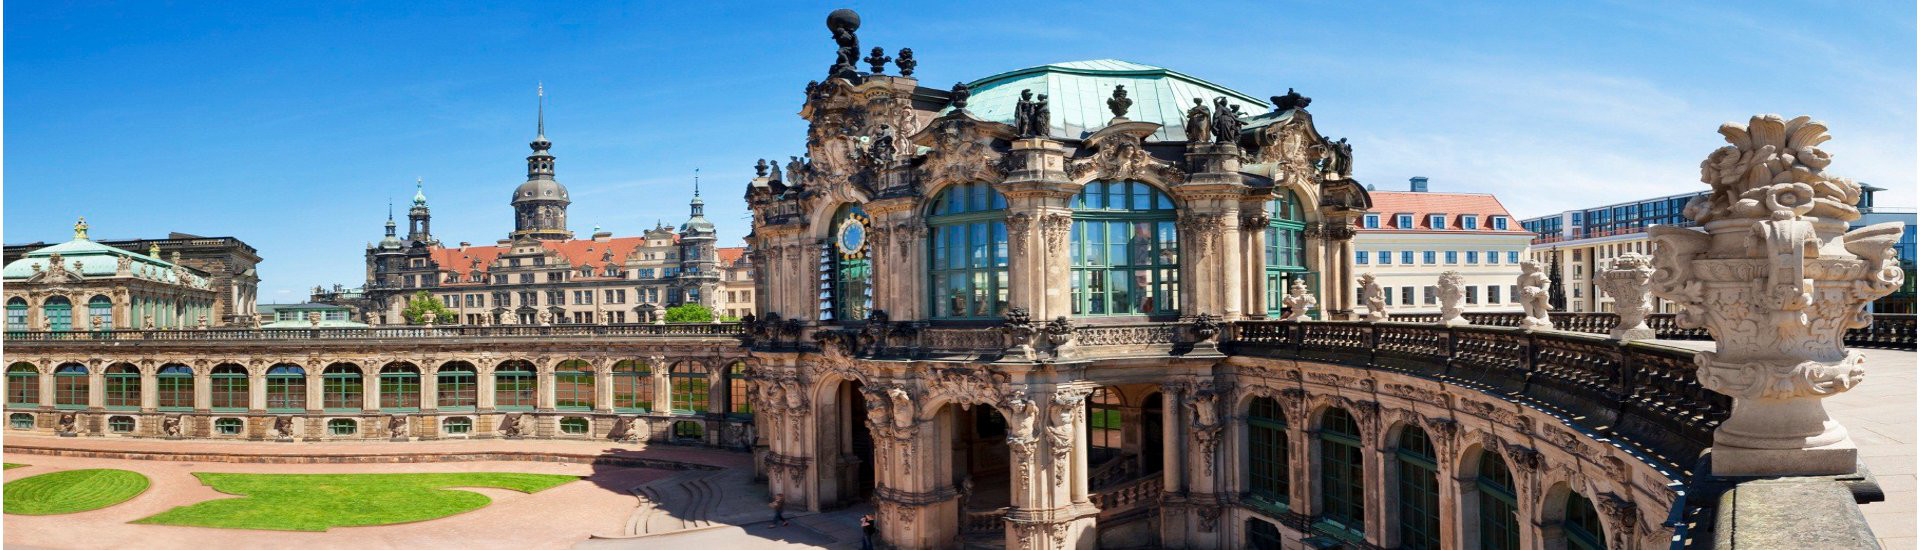 https://www.dargel.de/busreisen/?type1=&type2=&destination=dresden&date=30.05.2017&dateReturn=&search=1